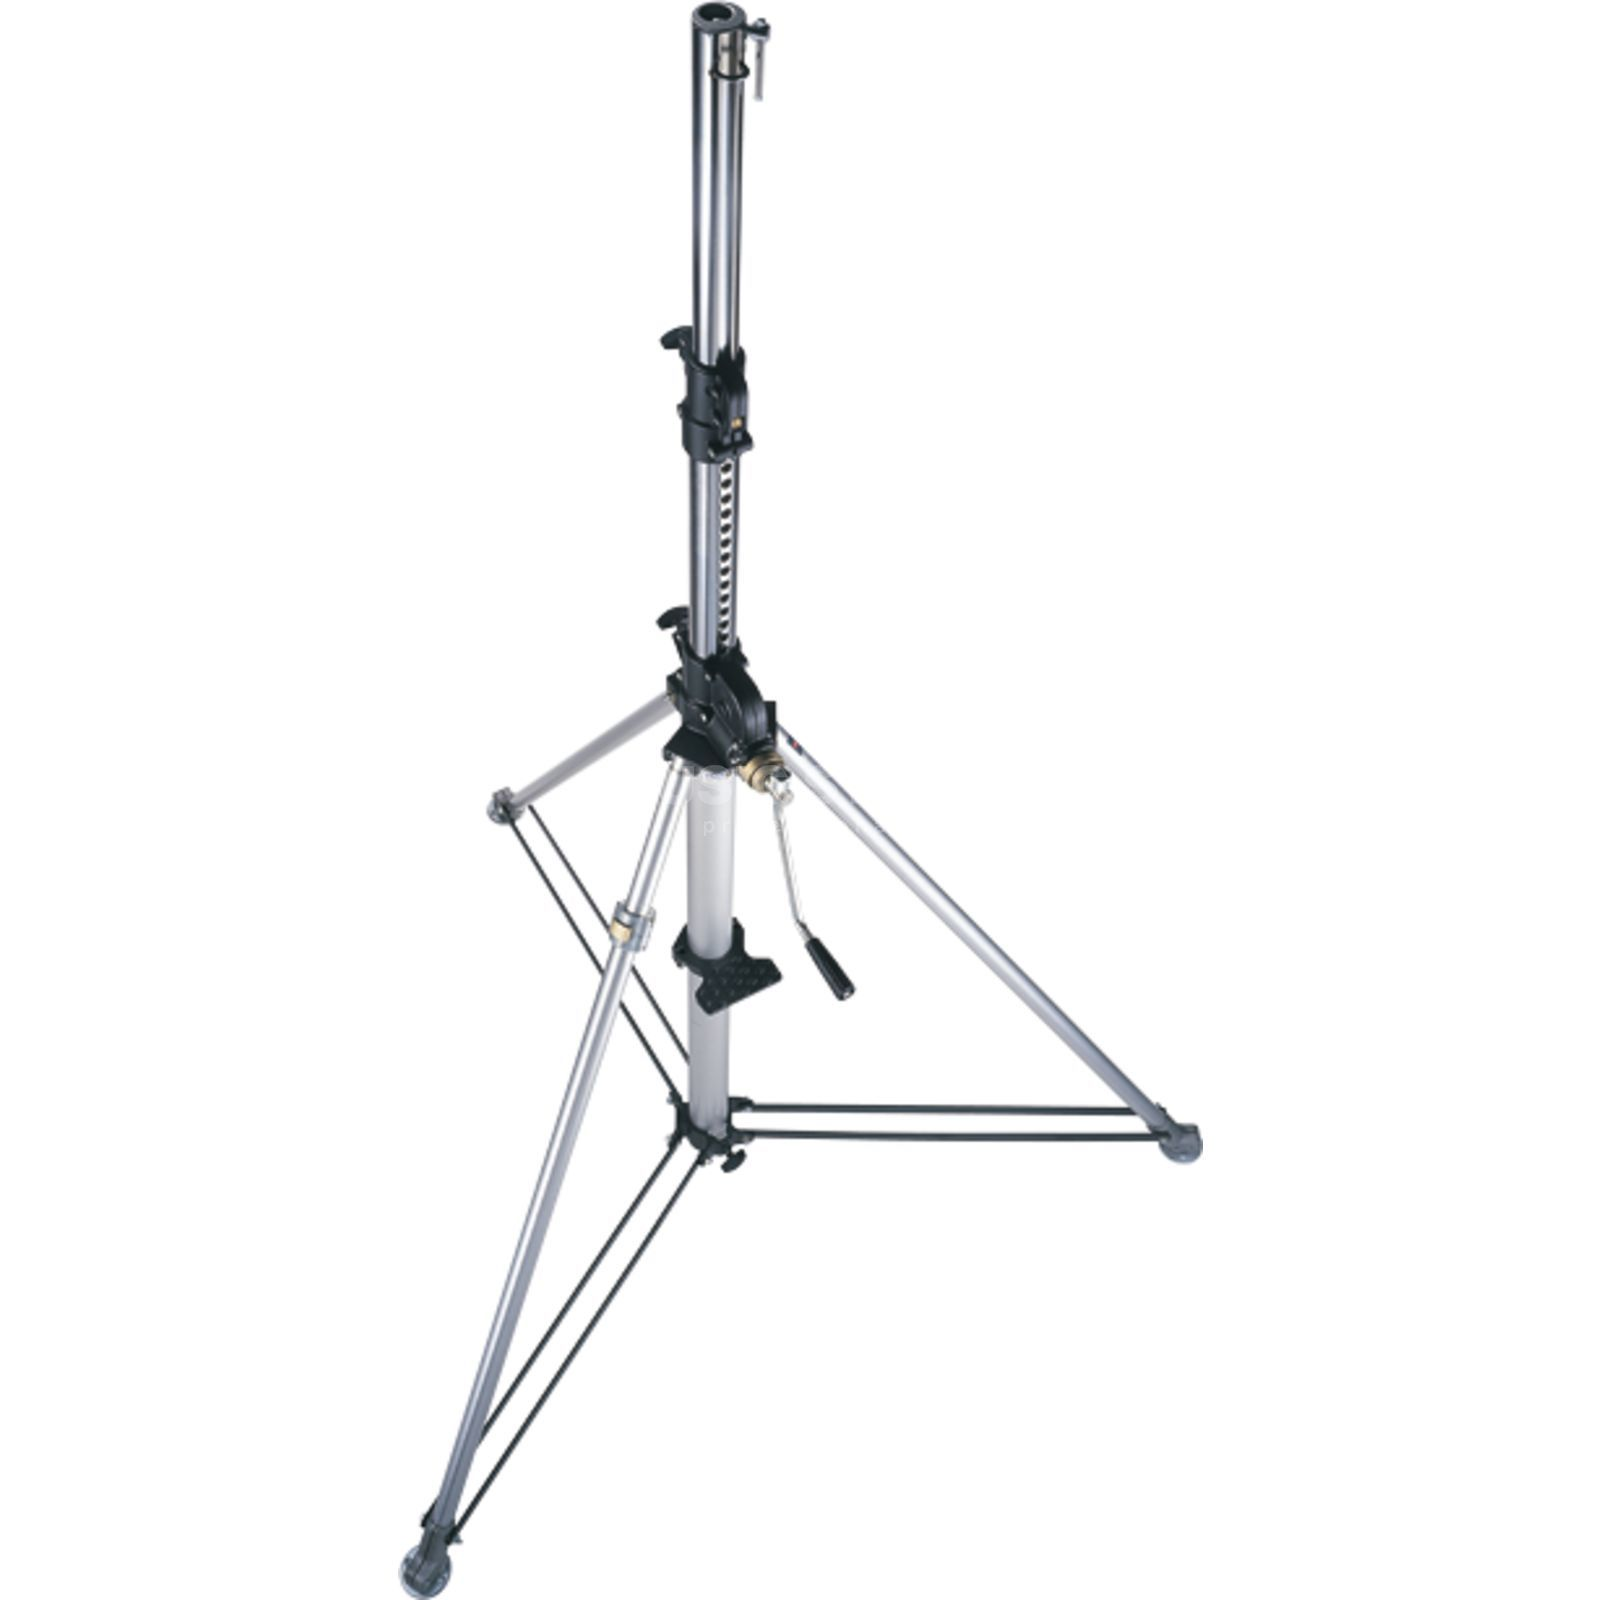 Manfrotto Stand MA 087 Wind up 167-370cm, max 30kg Produktbillede